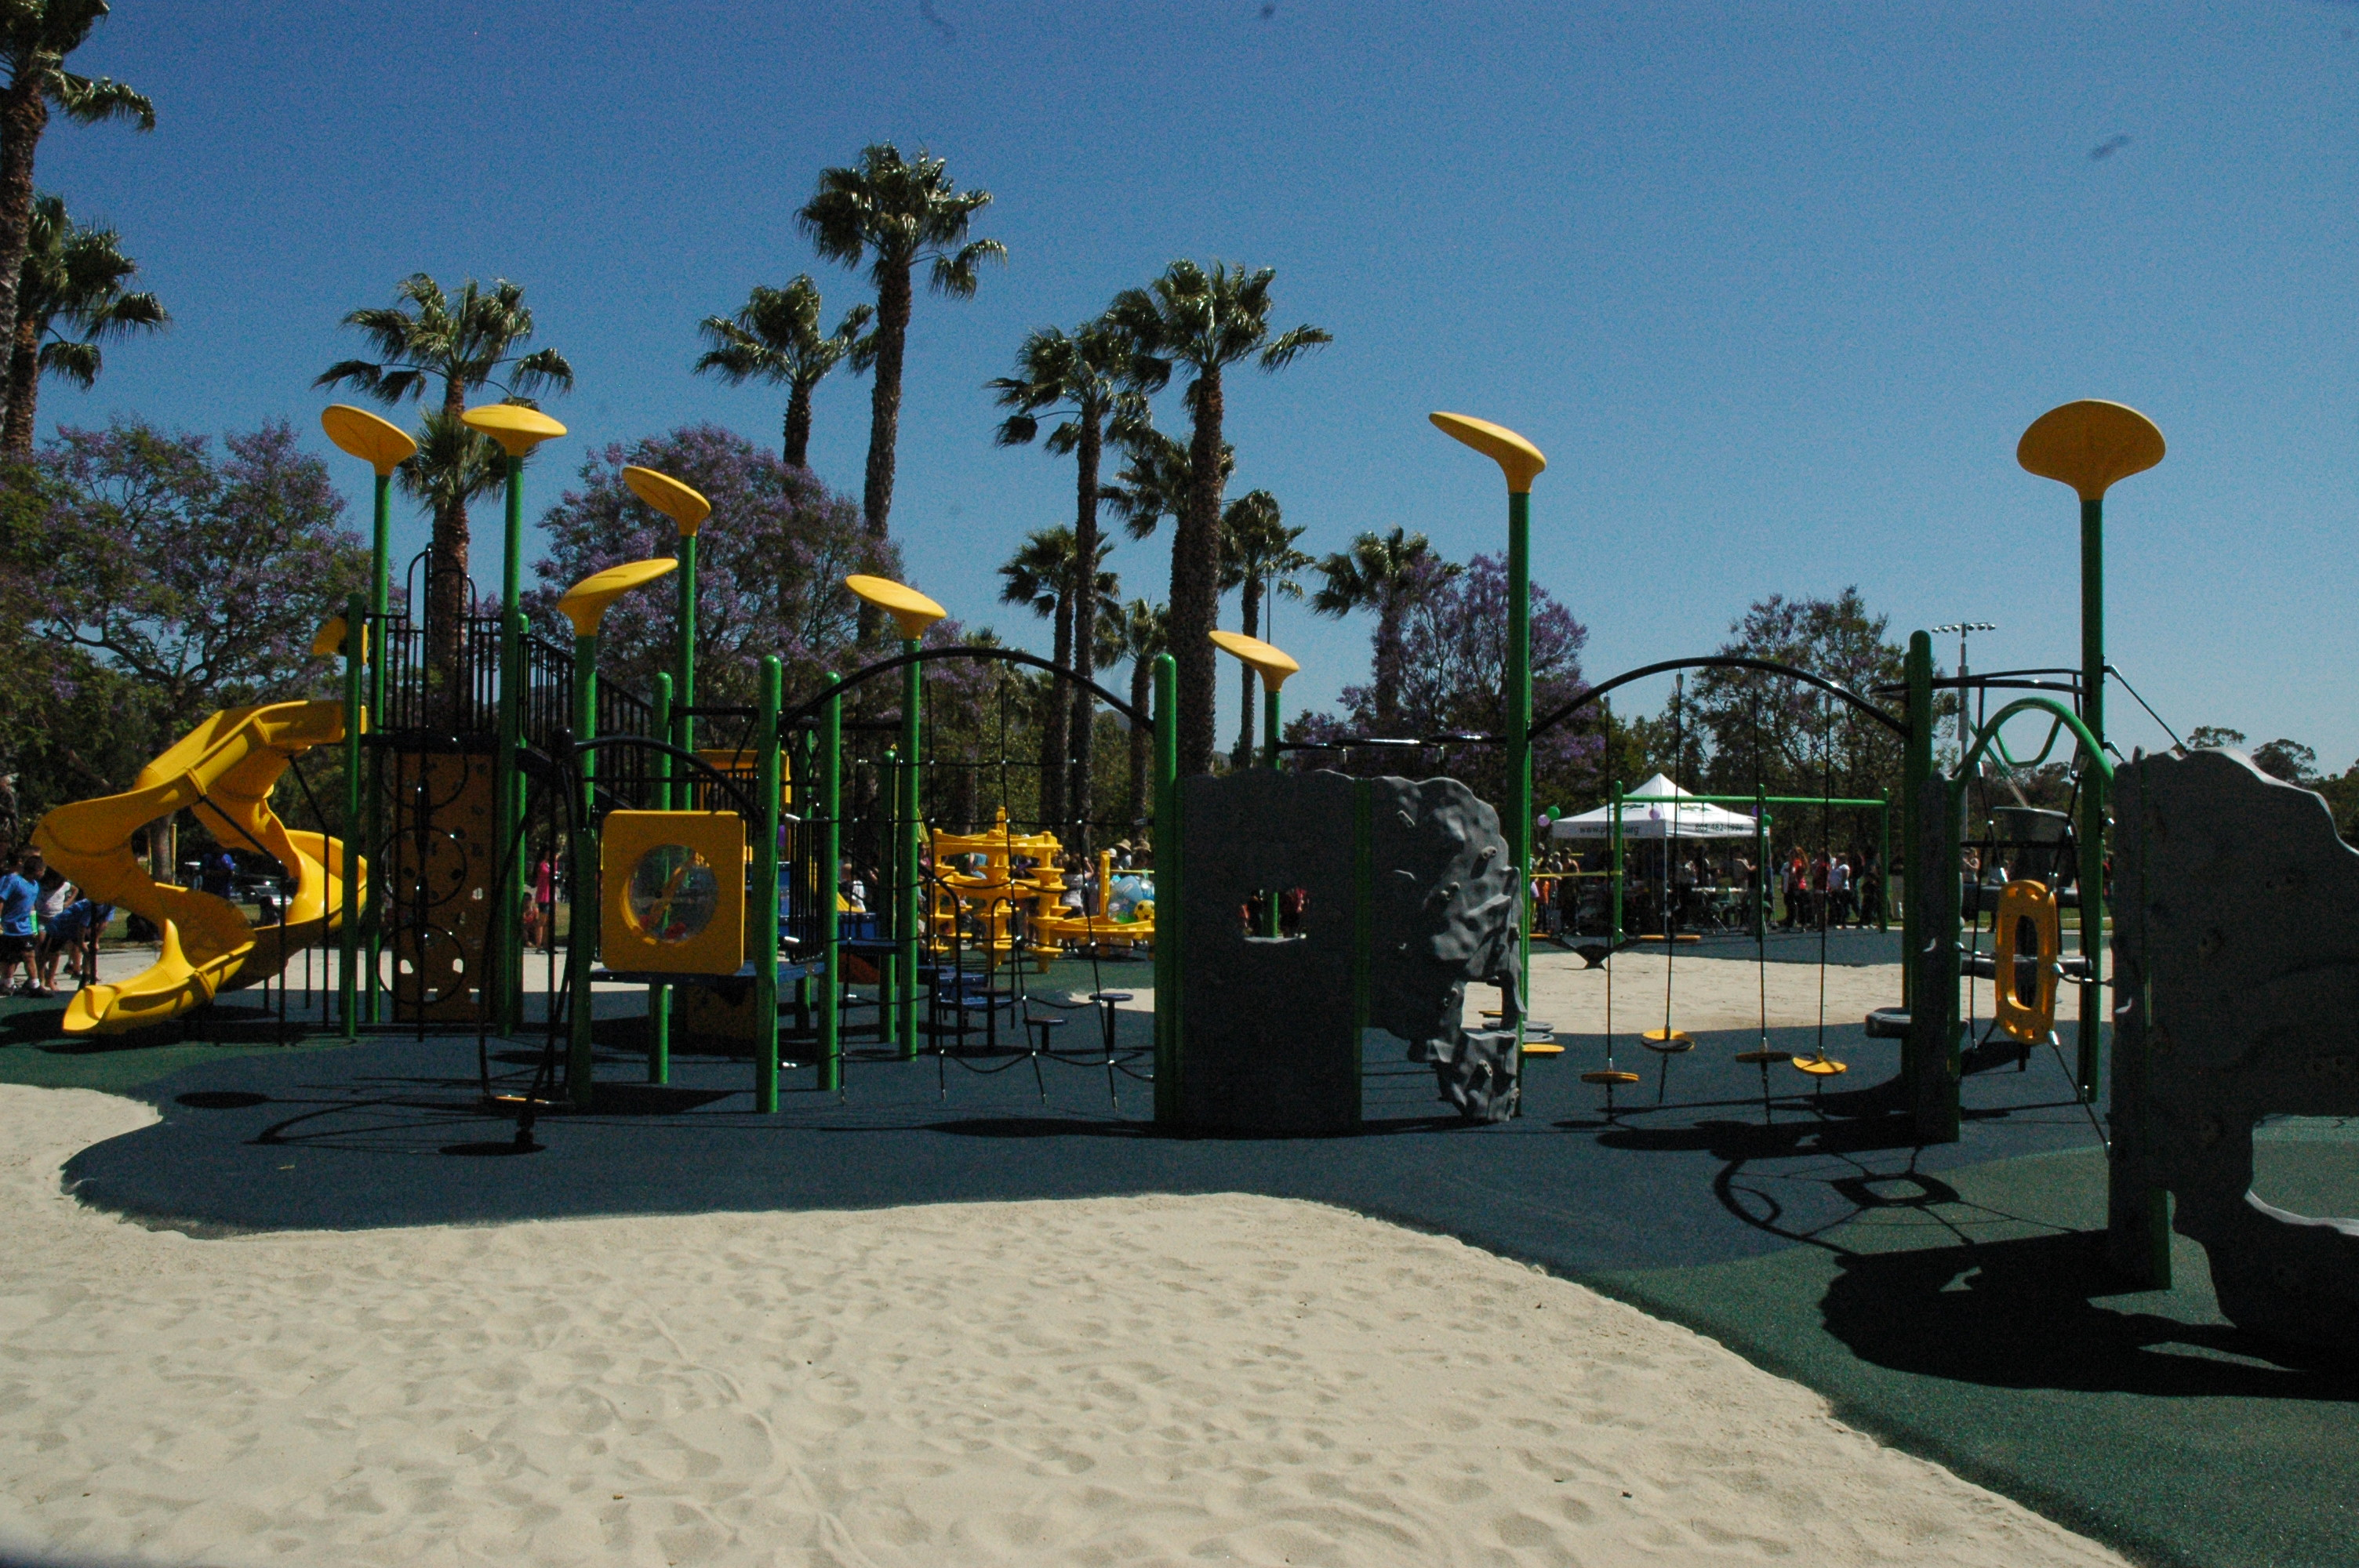 Los Angeles Commercial Playground Equipment Company Sun